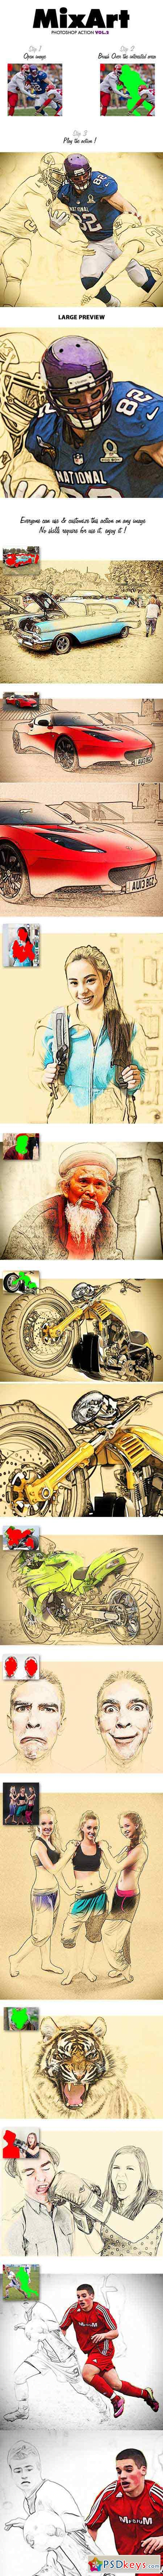 MixArt Vol.2 - Photoshop Action 11589521